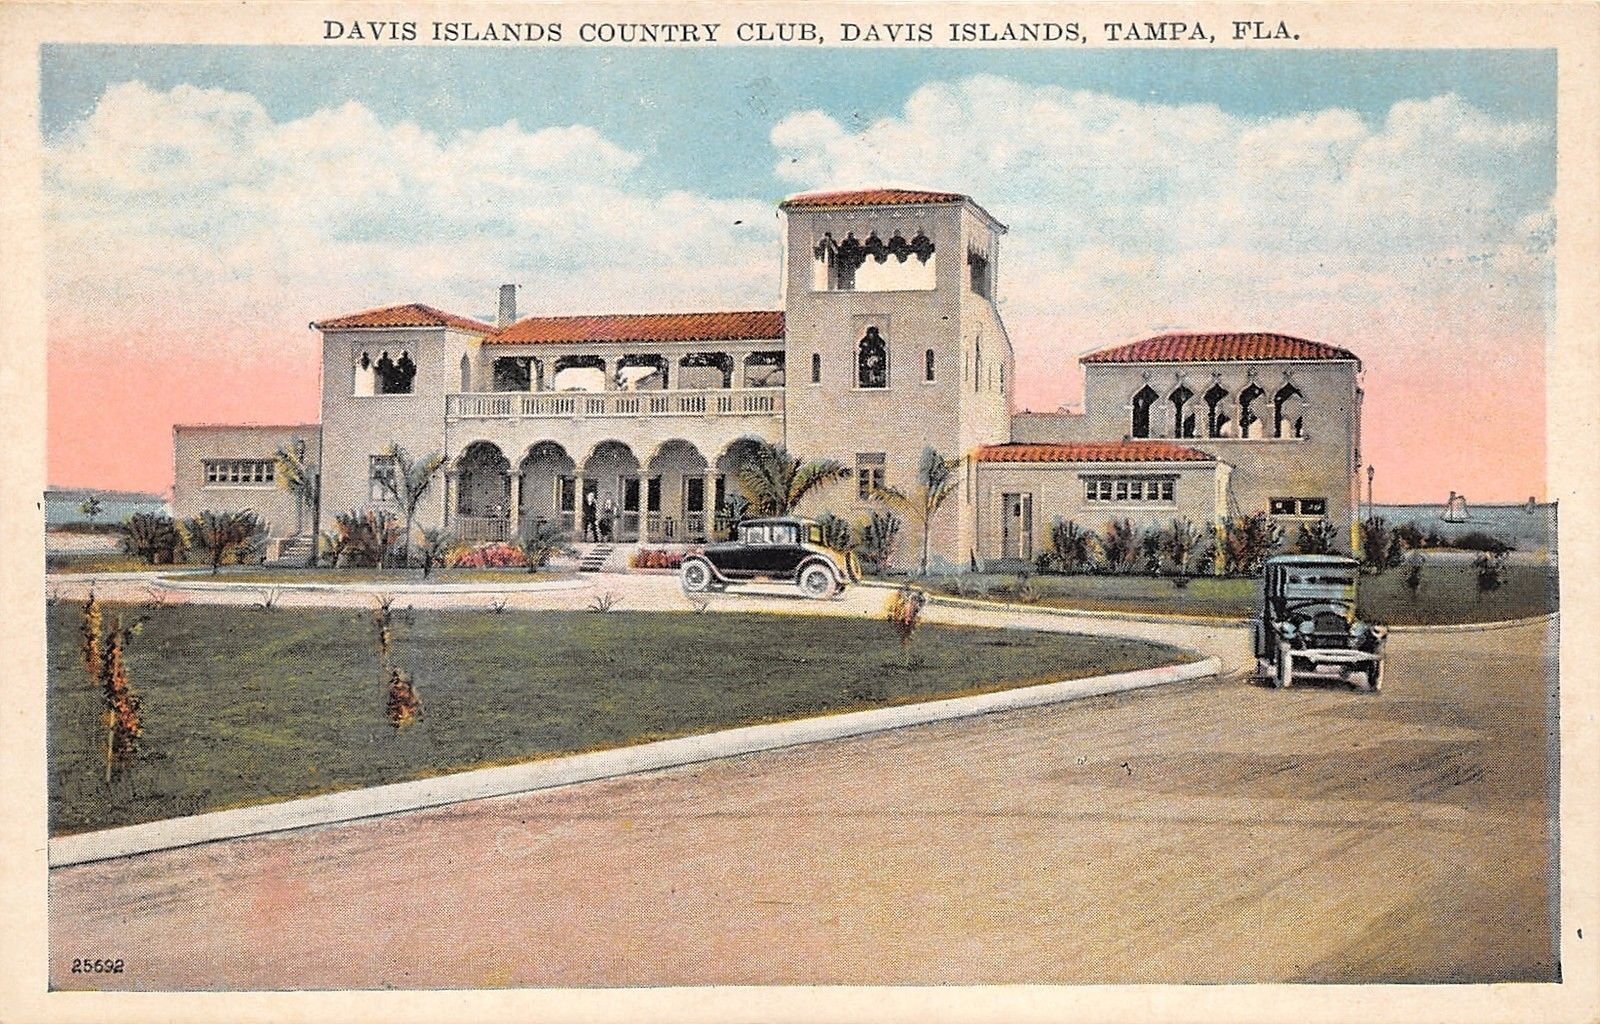 Tampa Florida~Davis Islands Country Club~Vintage Cars in